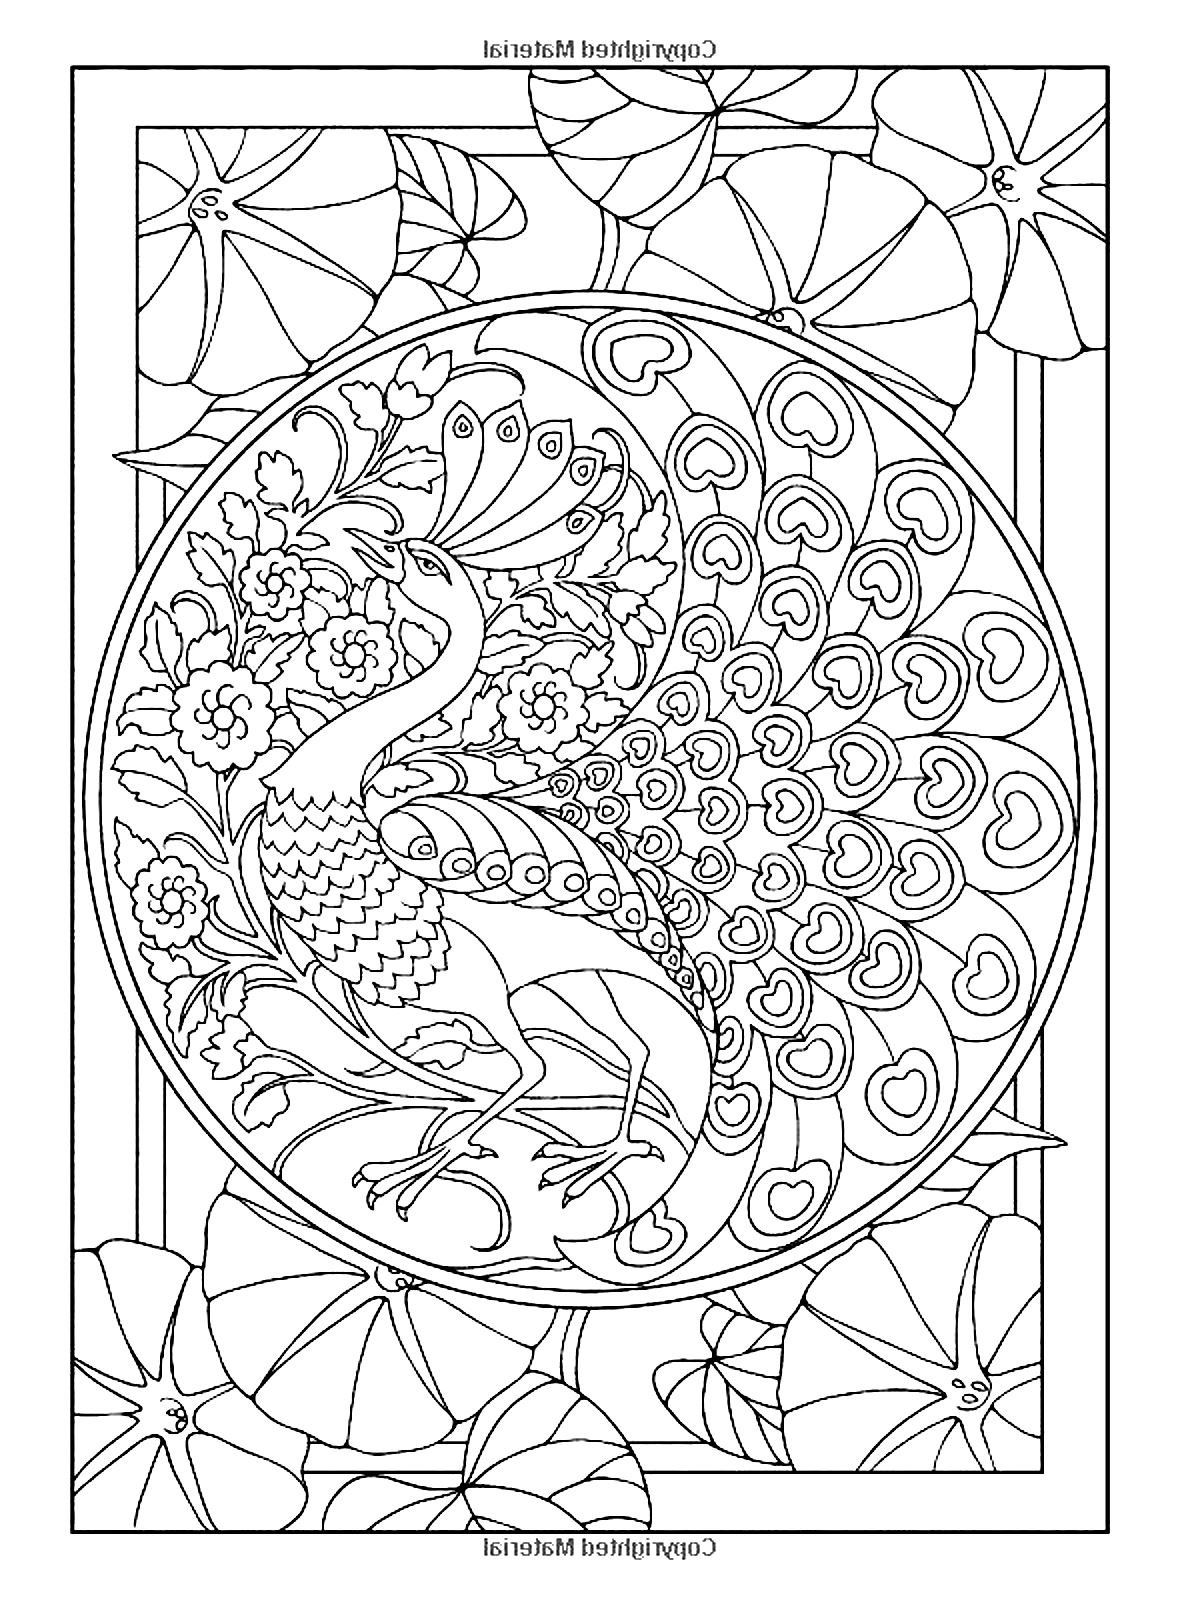 Free Coloring Page Adult Art Nouveau Style Peacock The An Animal Often Used In Illustrations